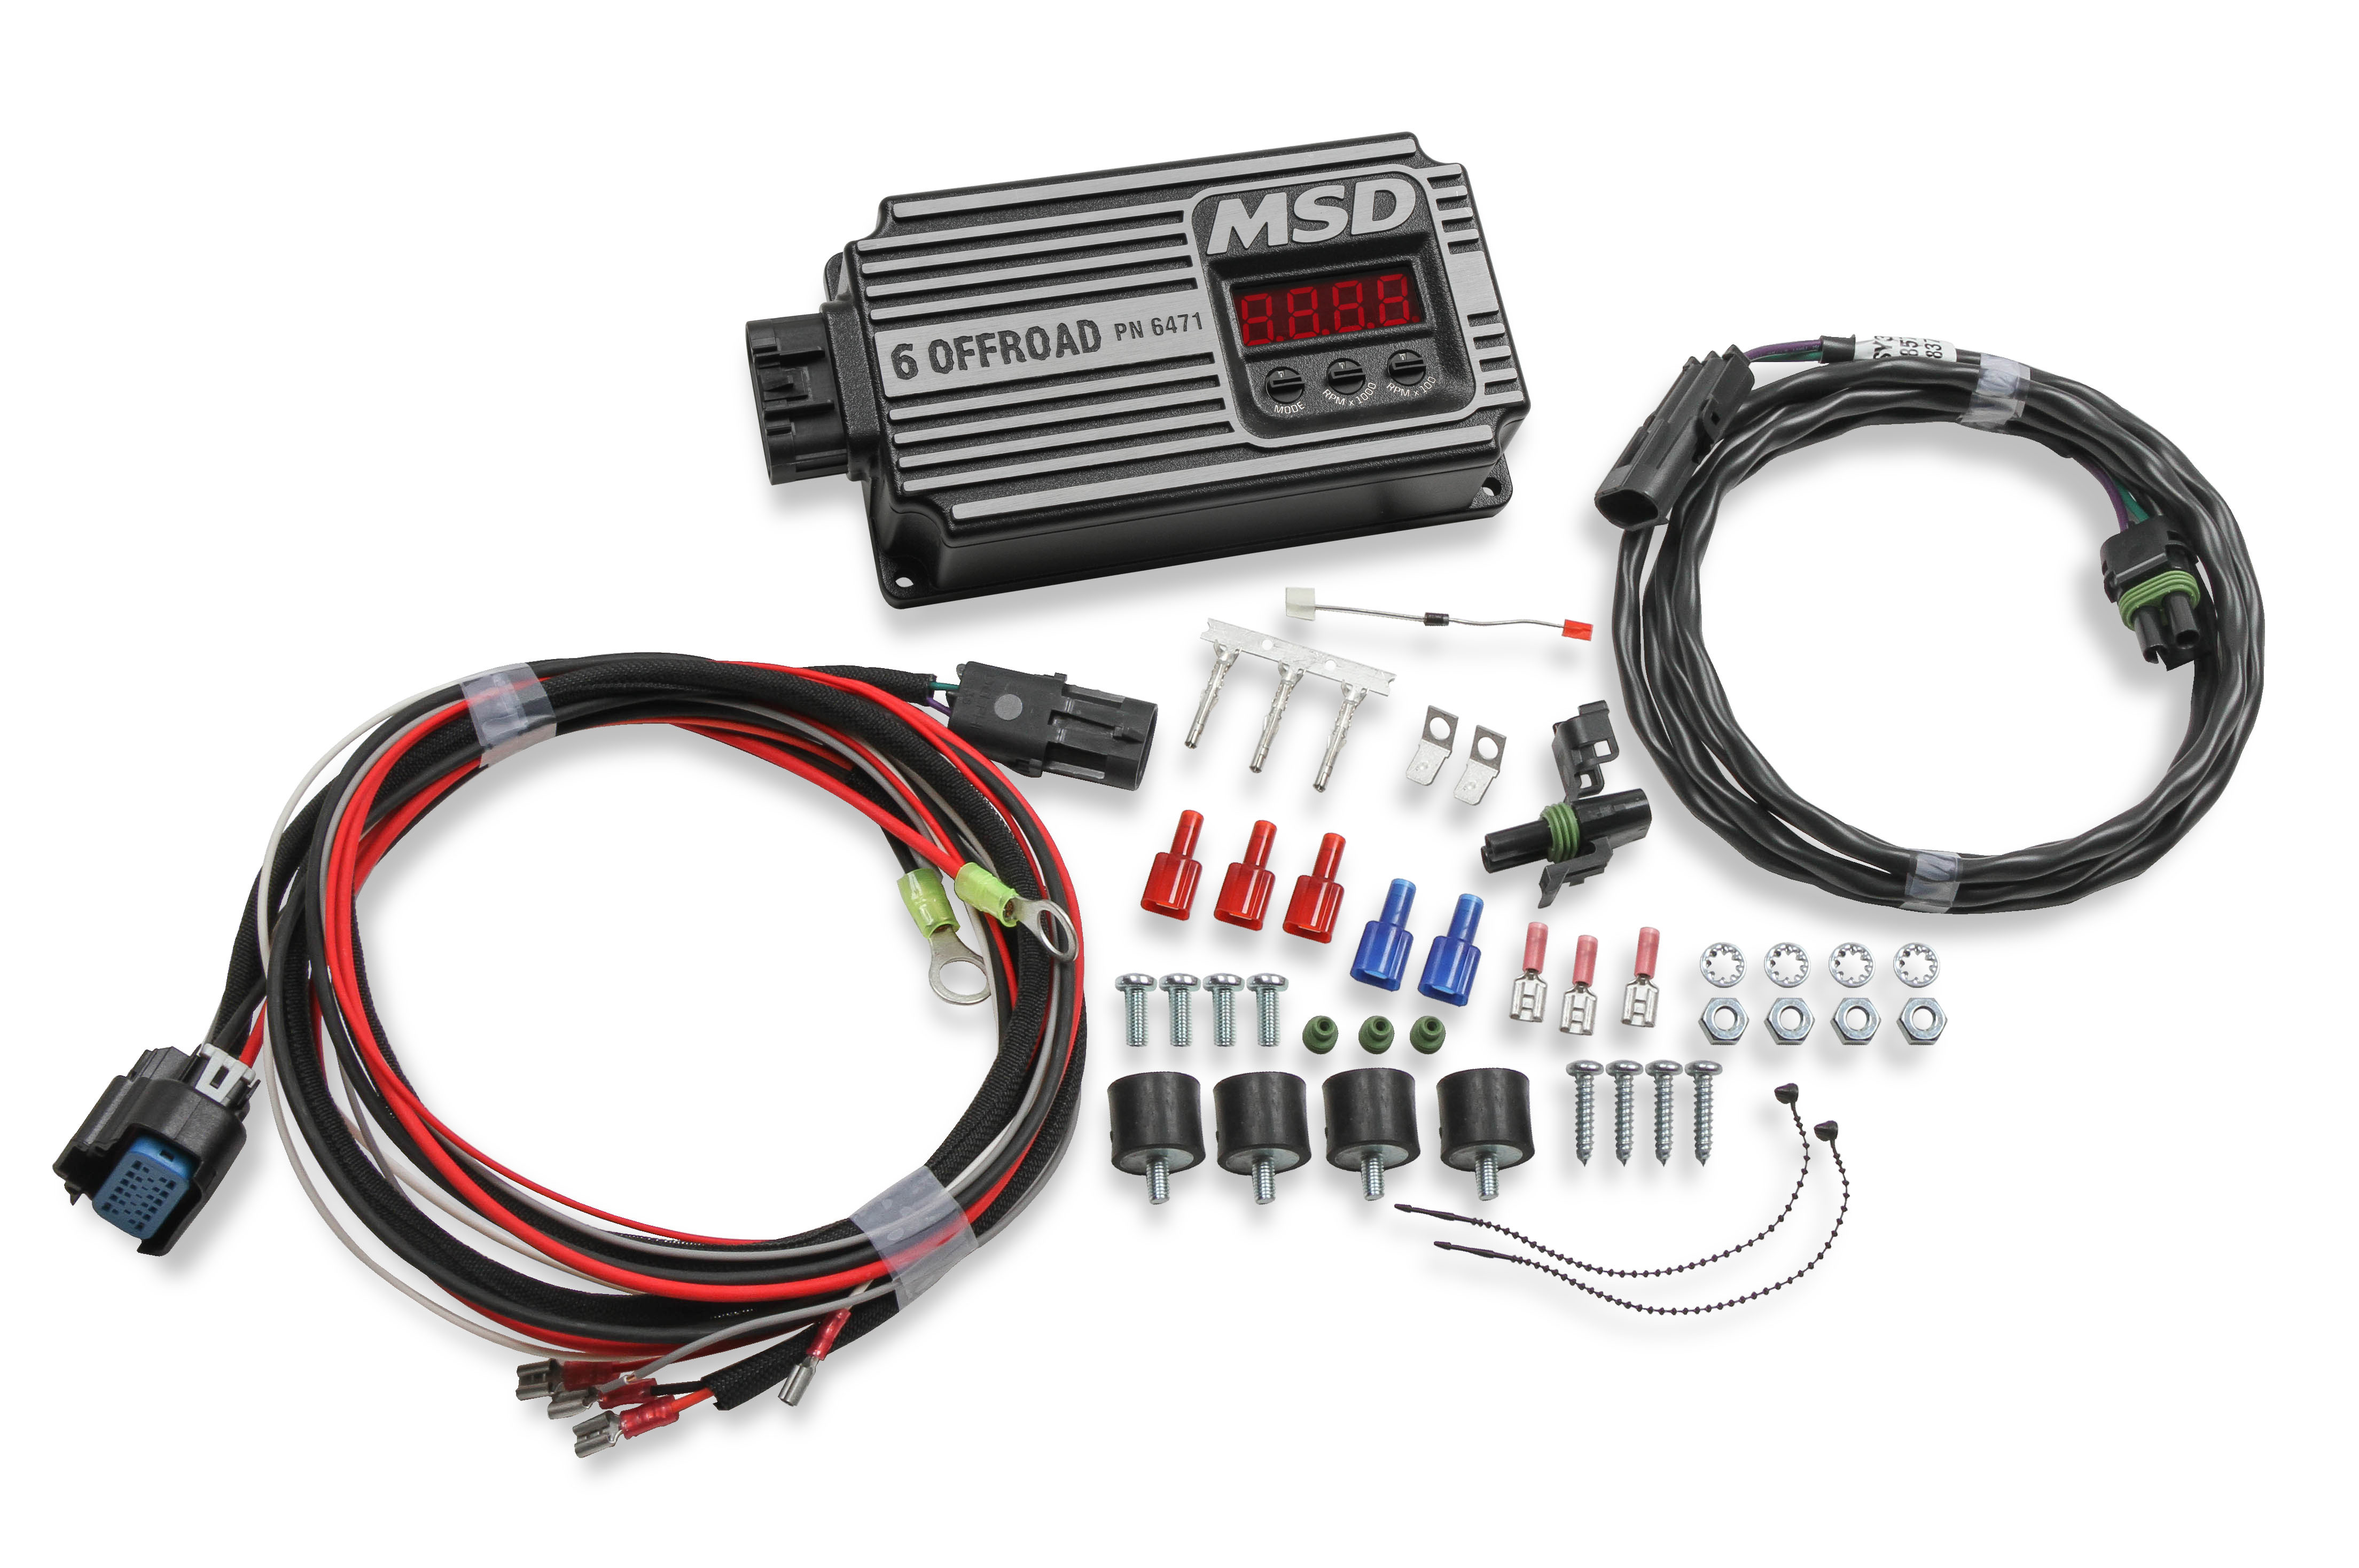 MSD Ignition 6471 Ignition Box, Digital-6 OFFROAD, Digital, CD Ignition, Multi-Spark, 45000V, 2-Step Rev Limiter, Step Retard, Each